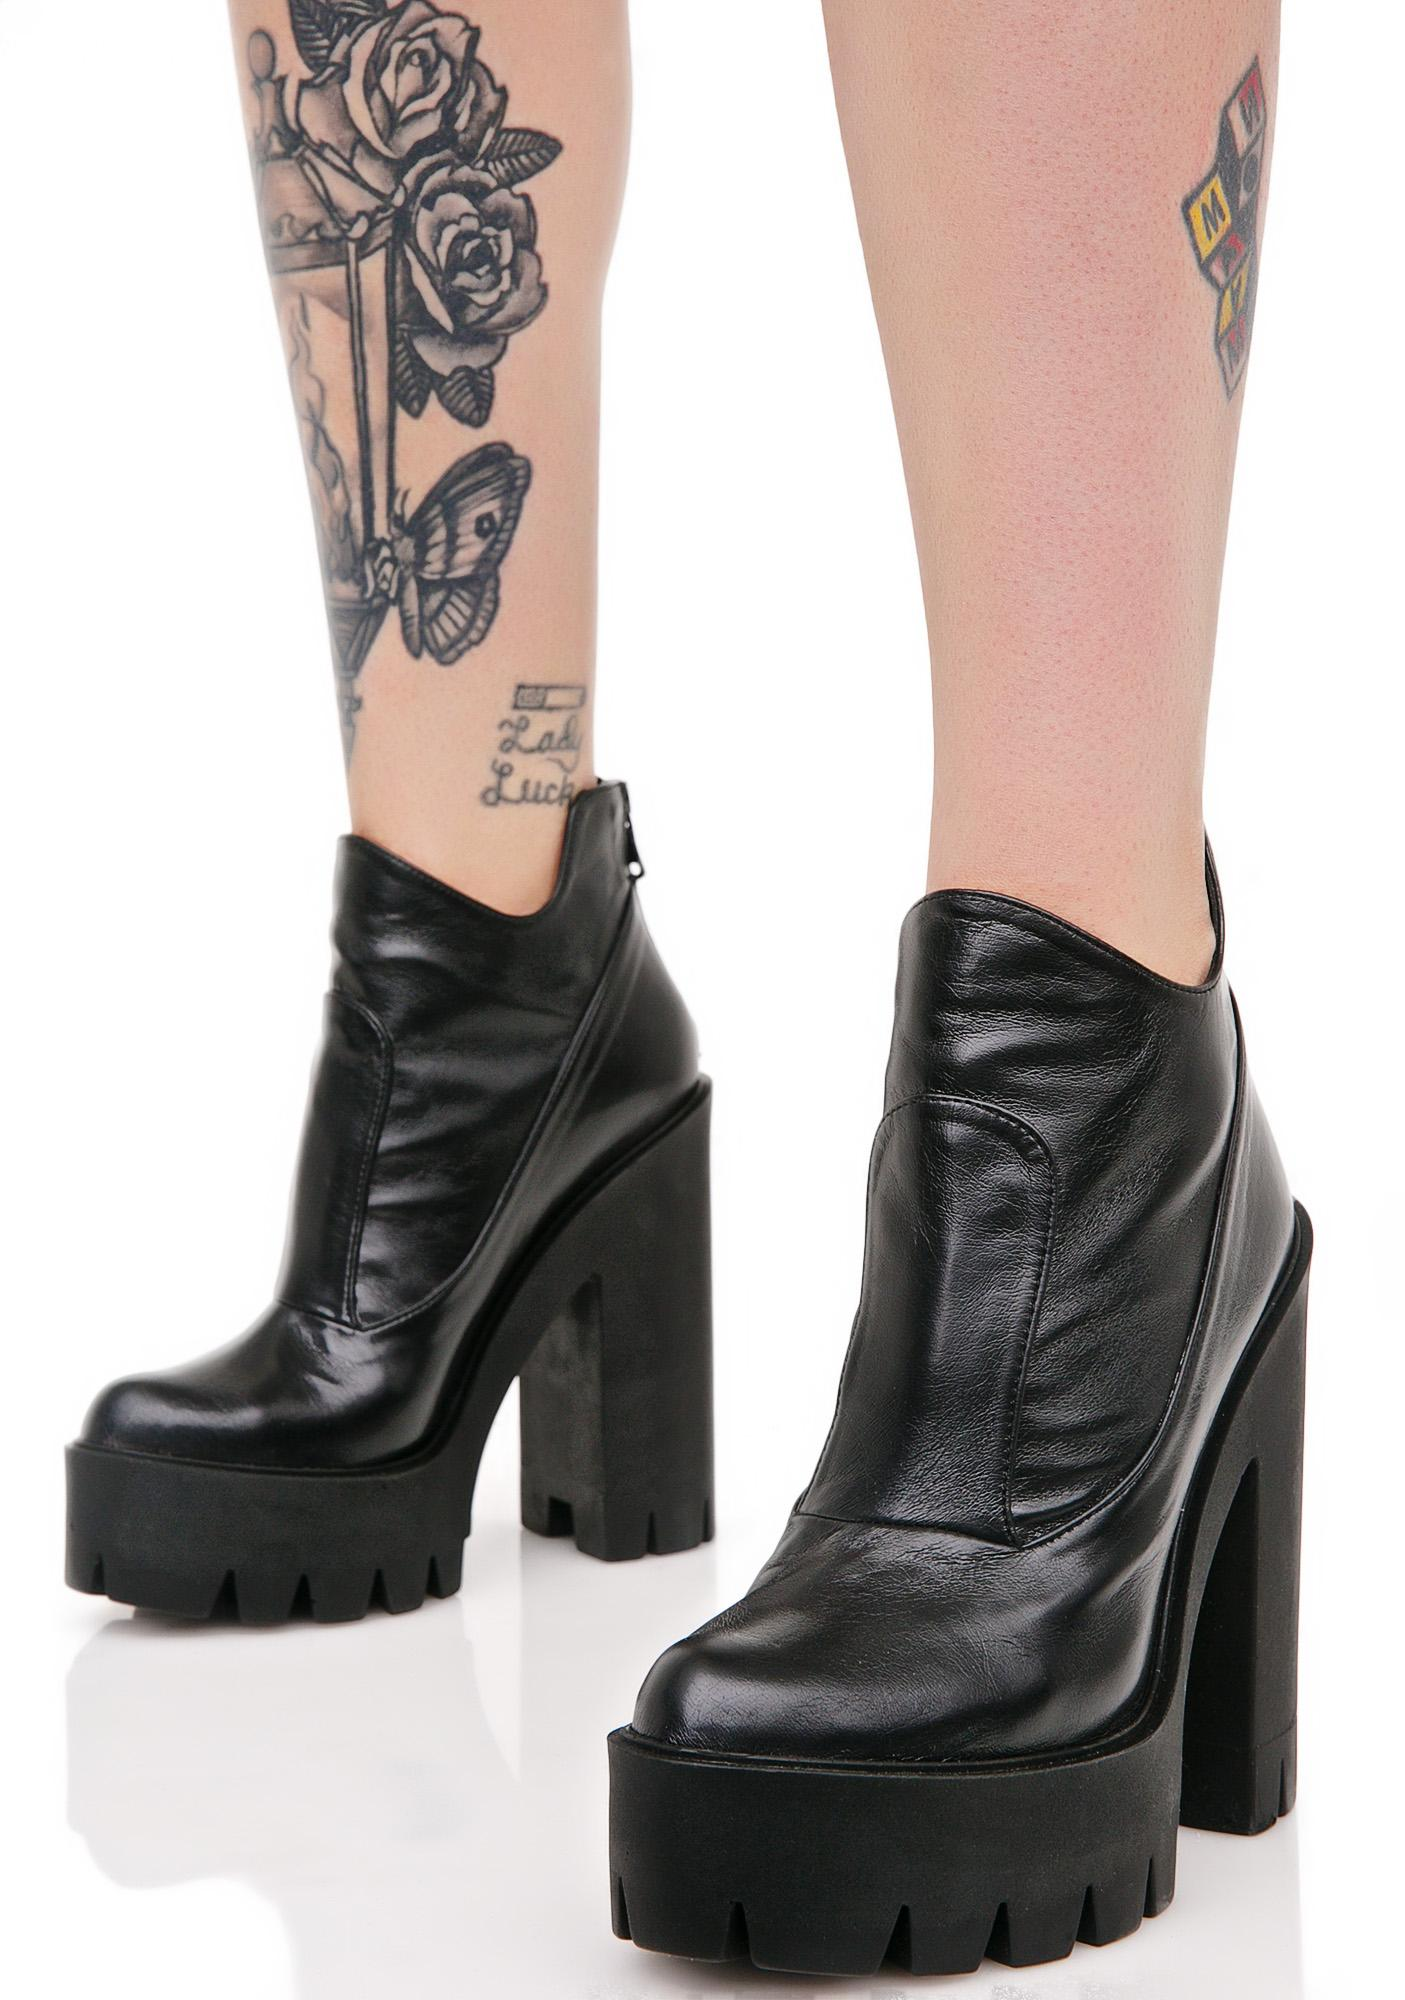 Stiù Leather Nevermind Boots